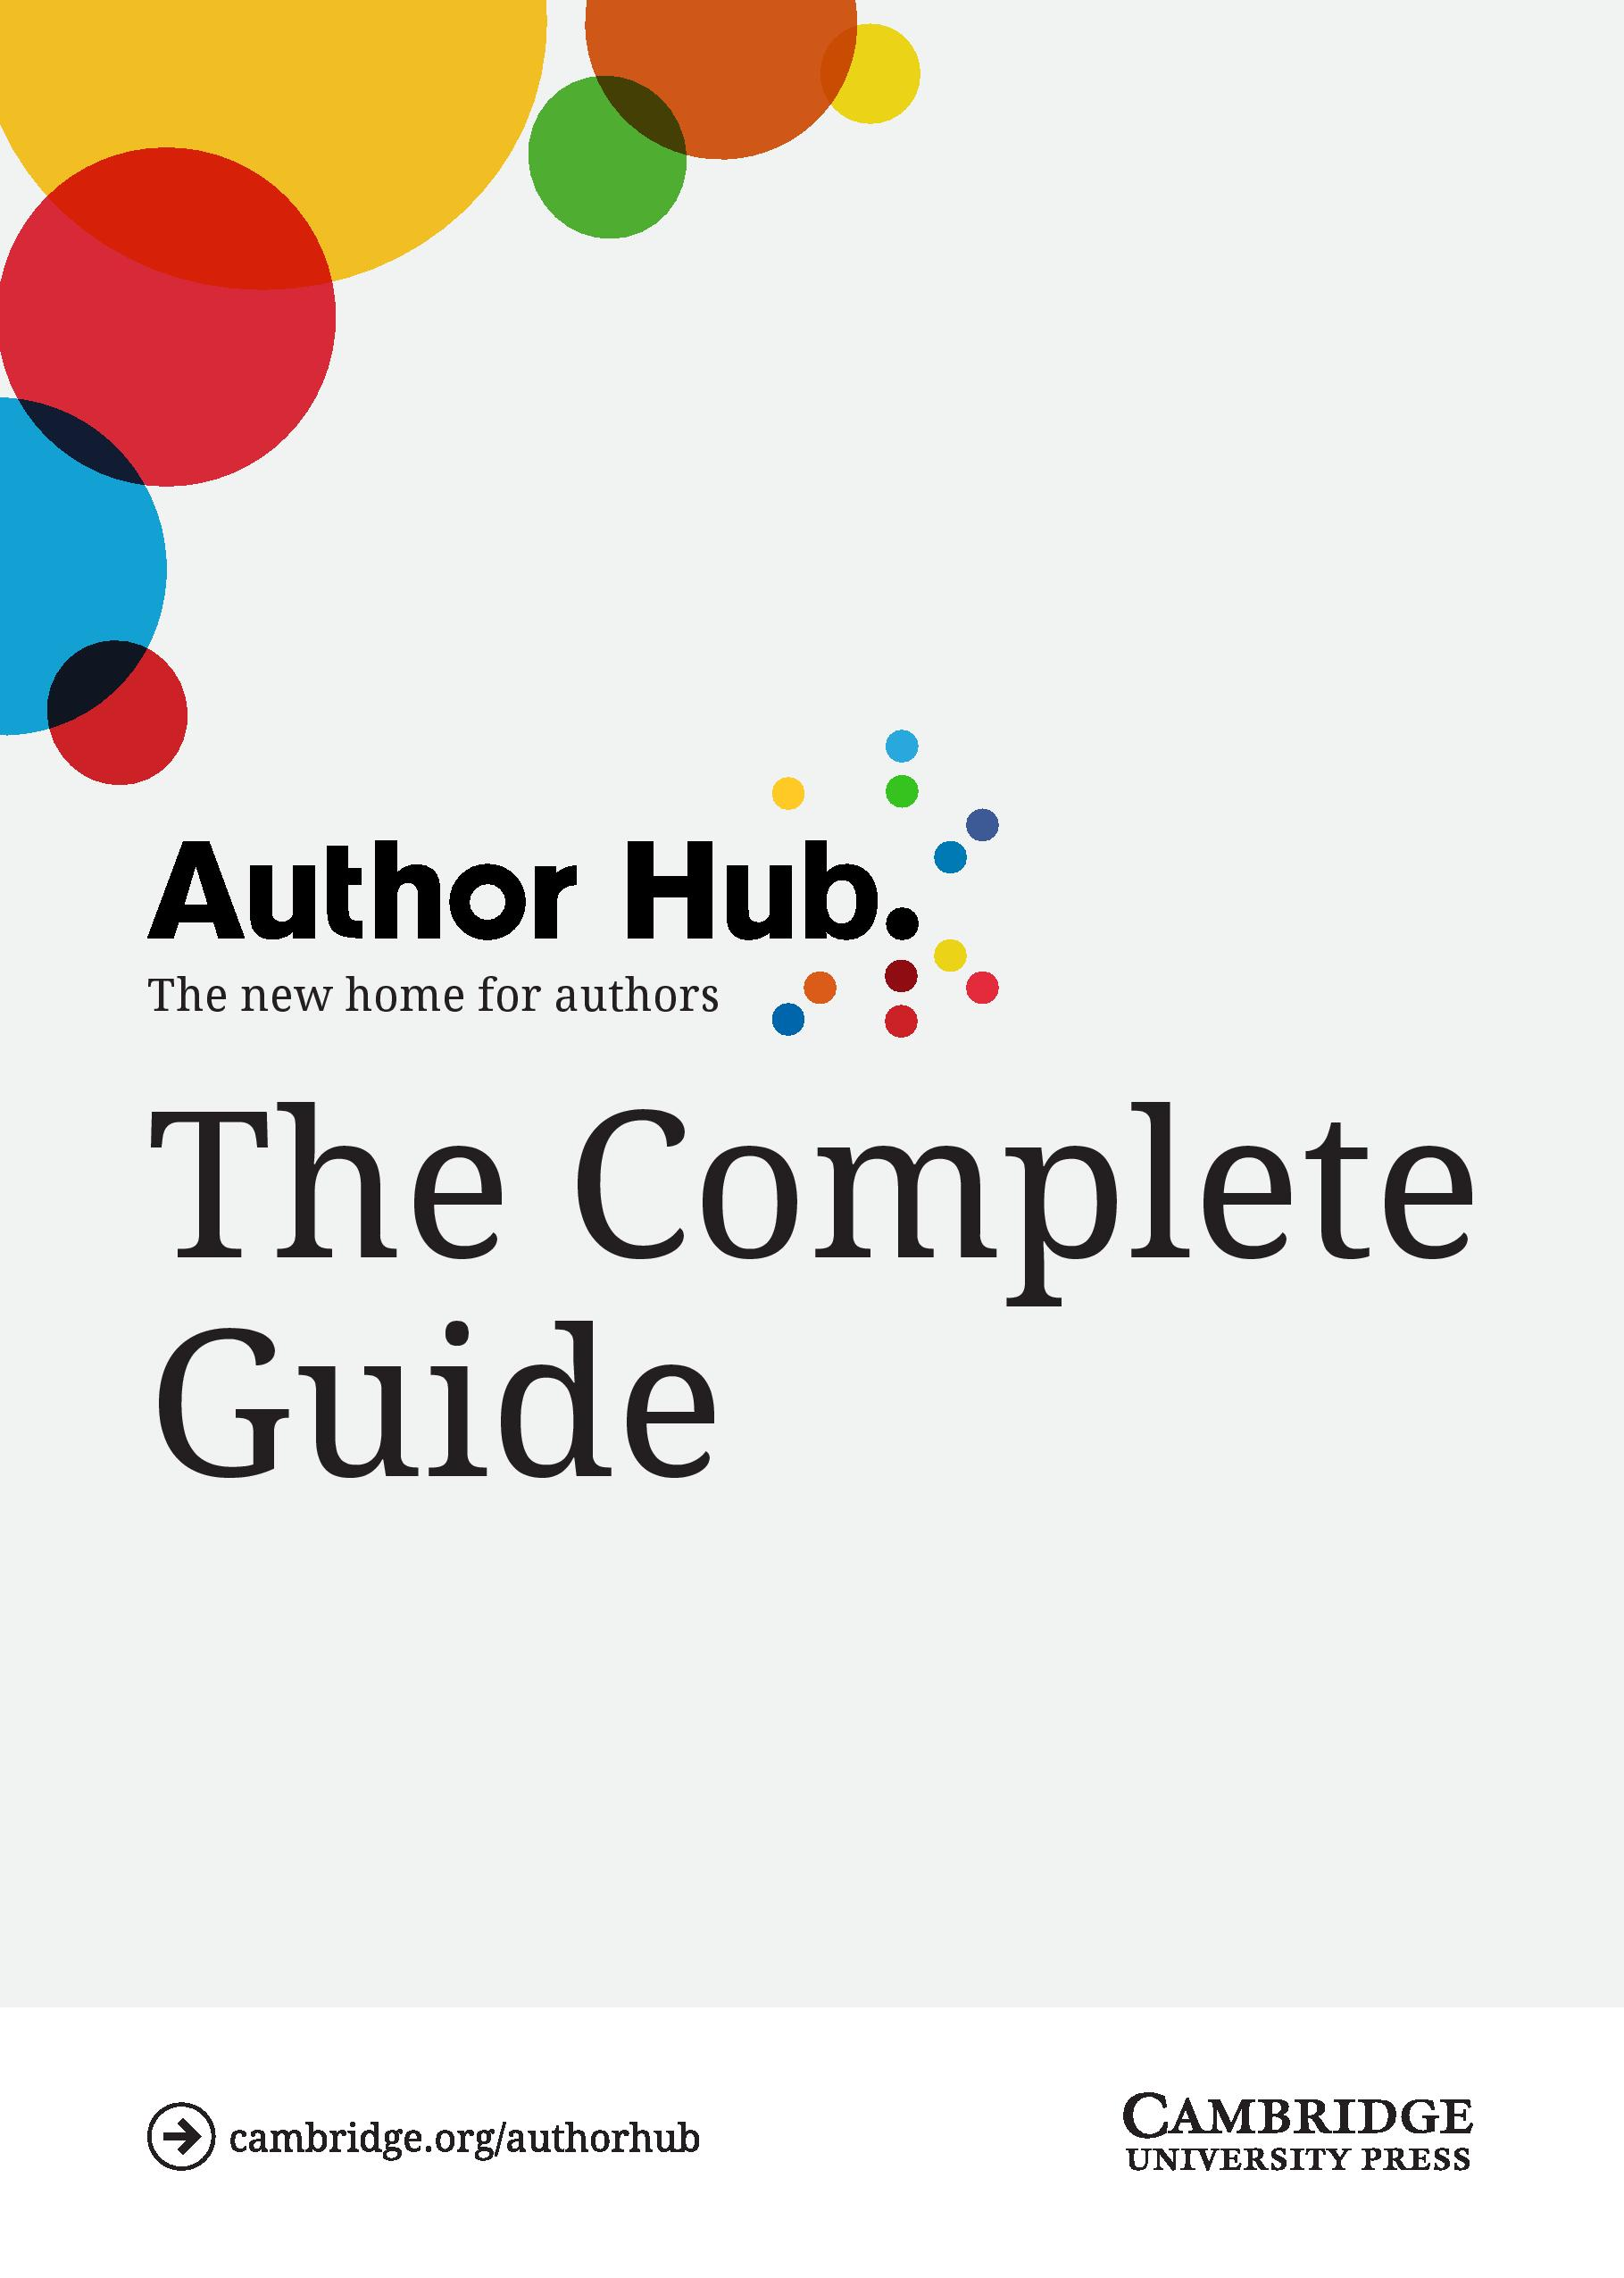 The Complete Guide to Author Hub